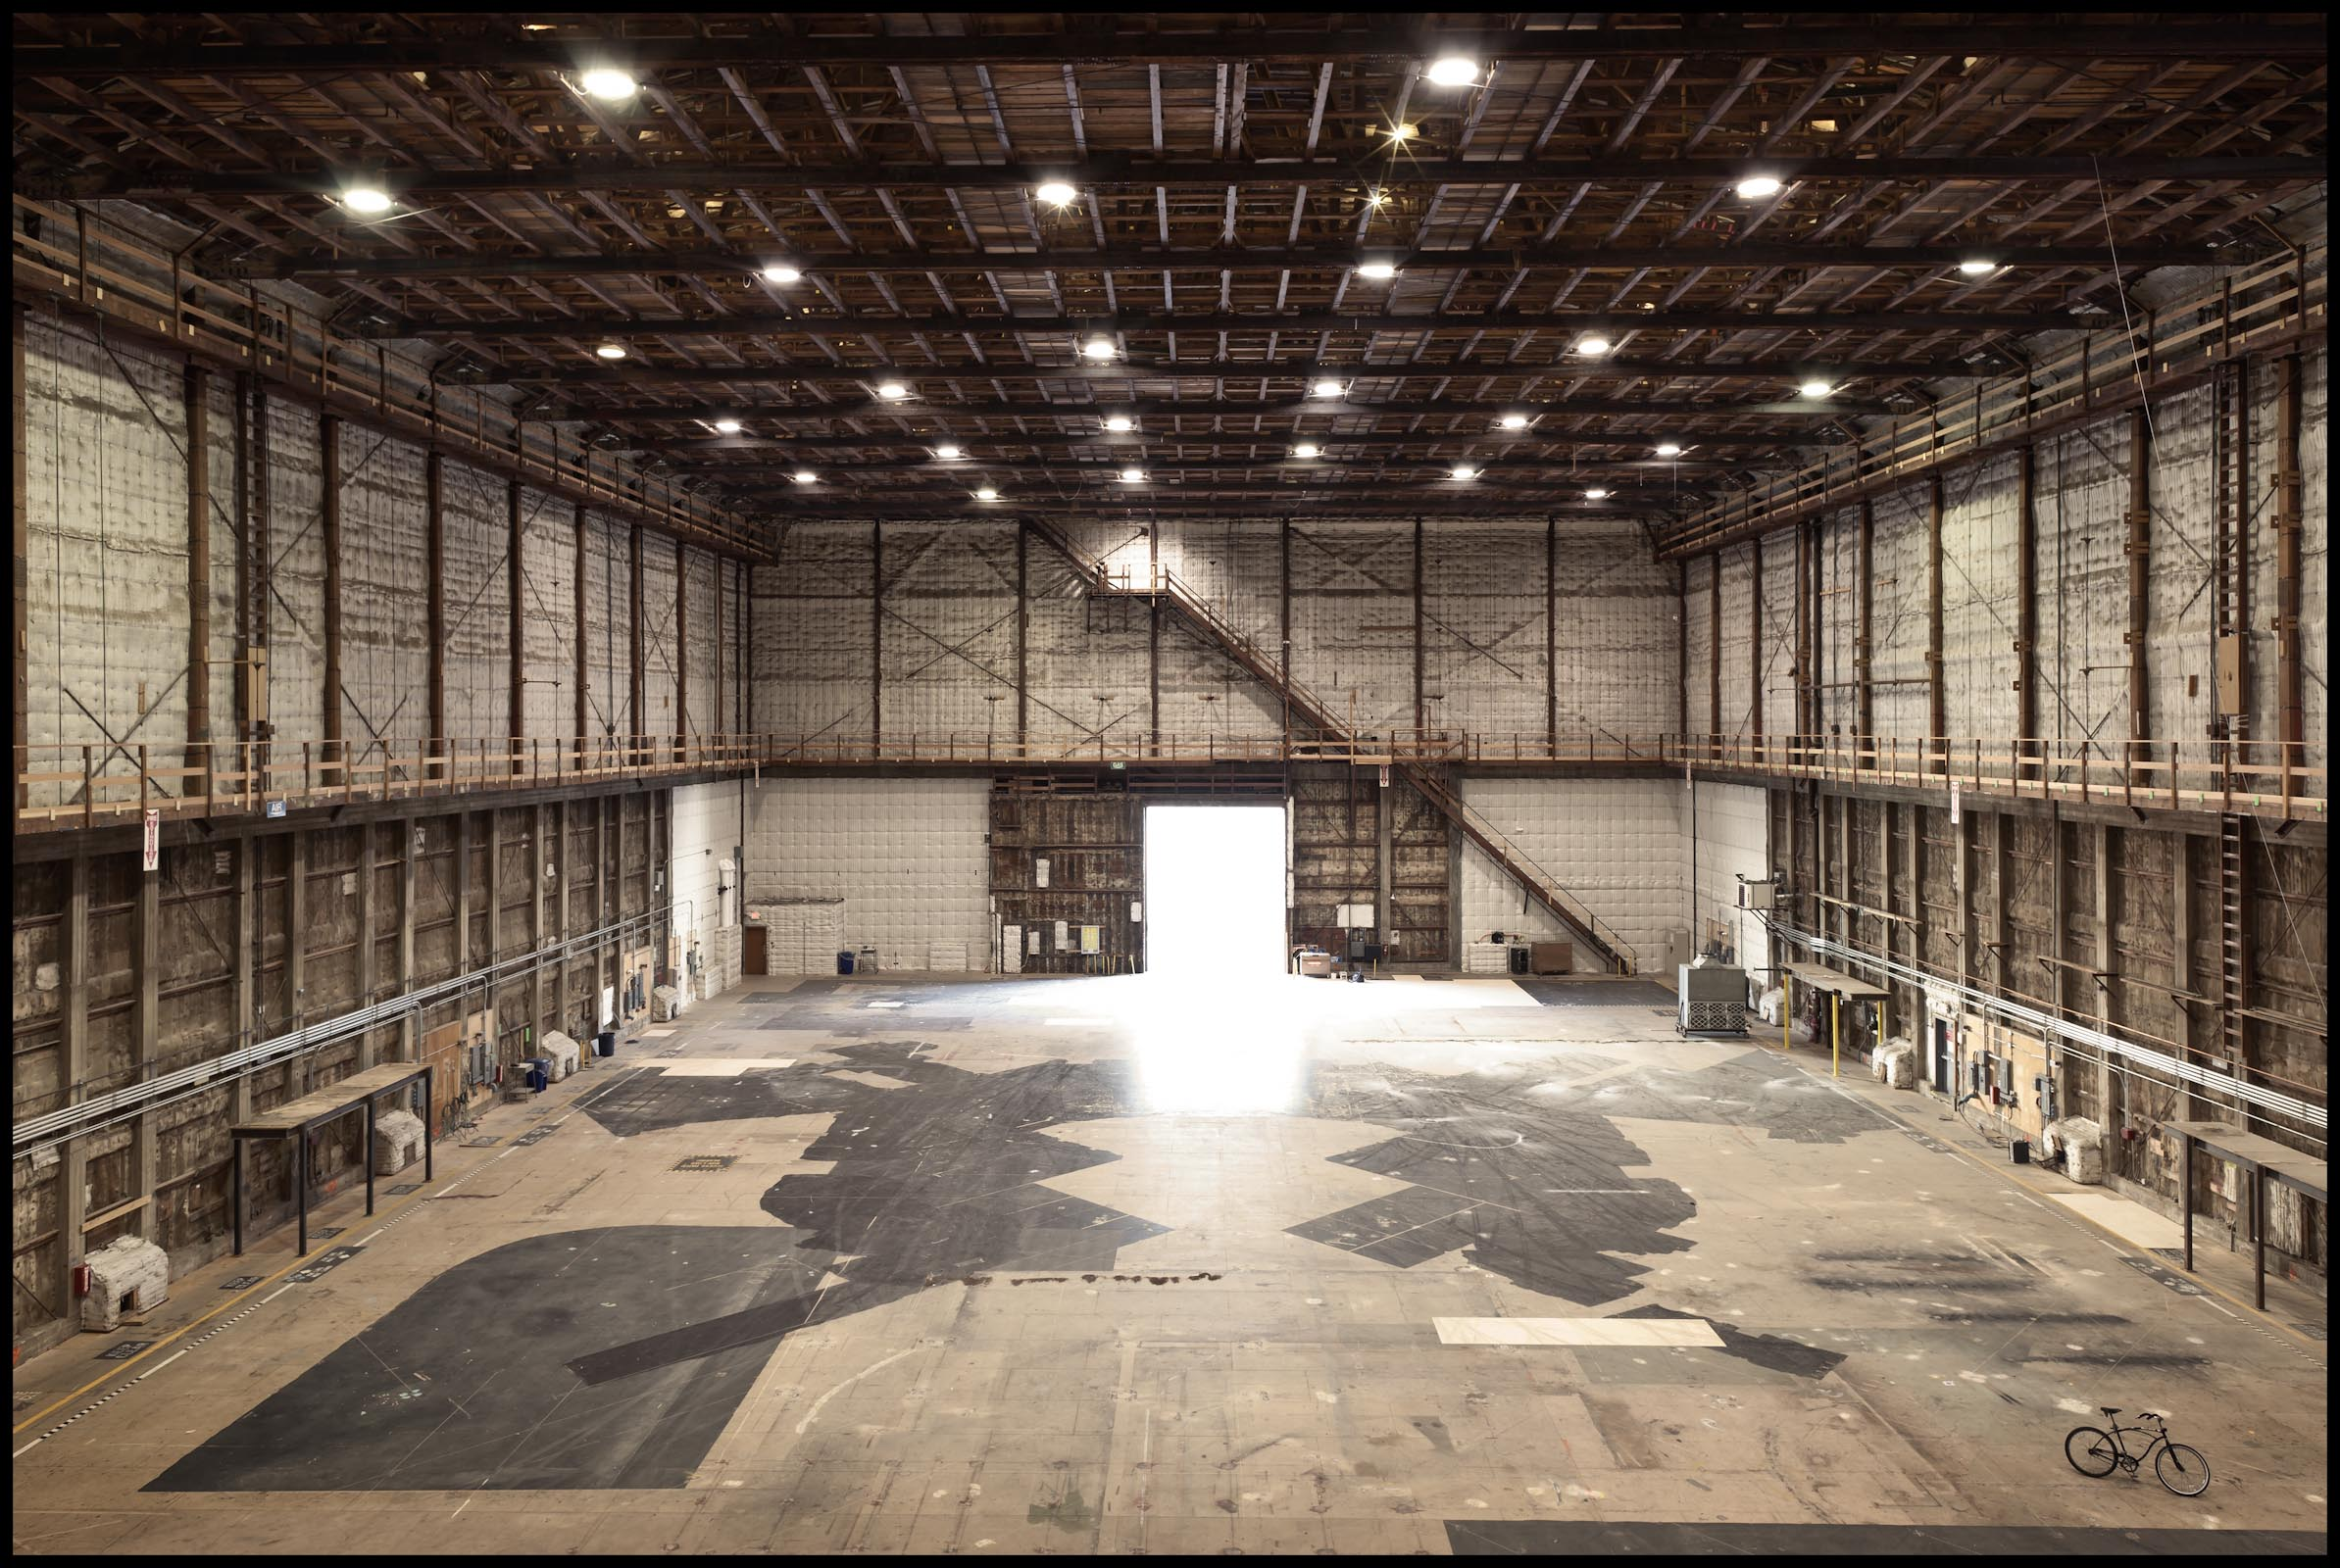 Stage 16, the tallest soundstage at Warner Bros - Burbank, CA - Los Angeles Magazine